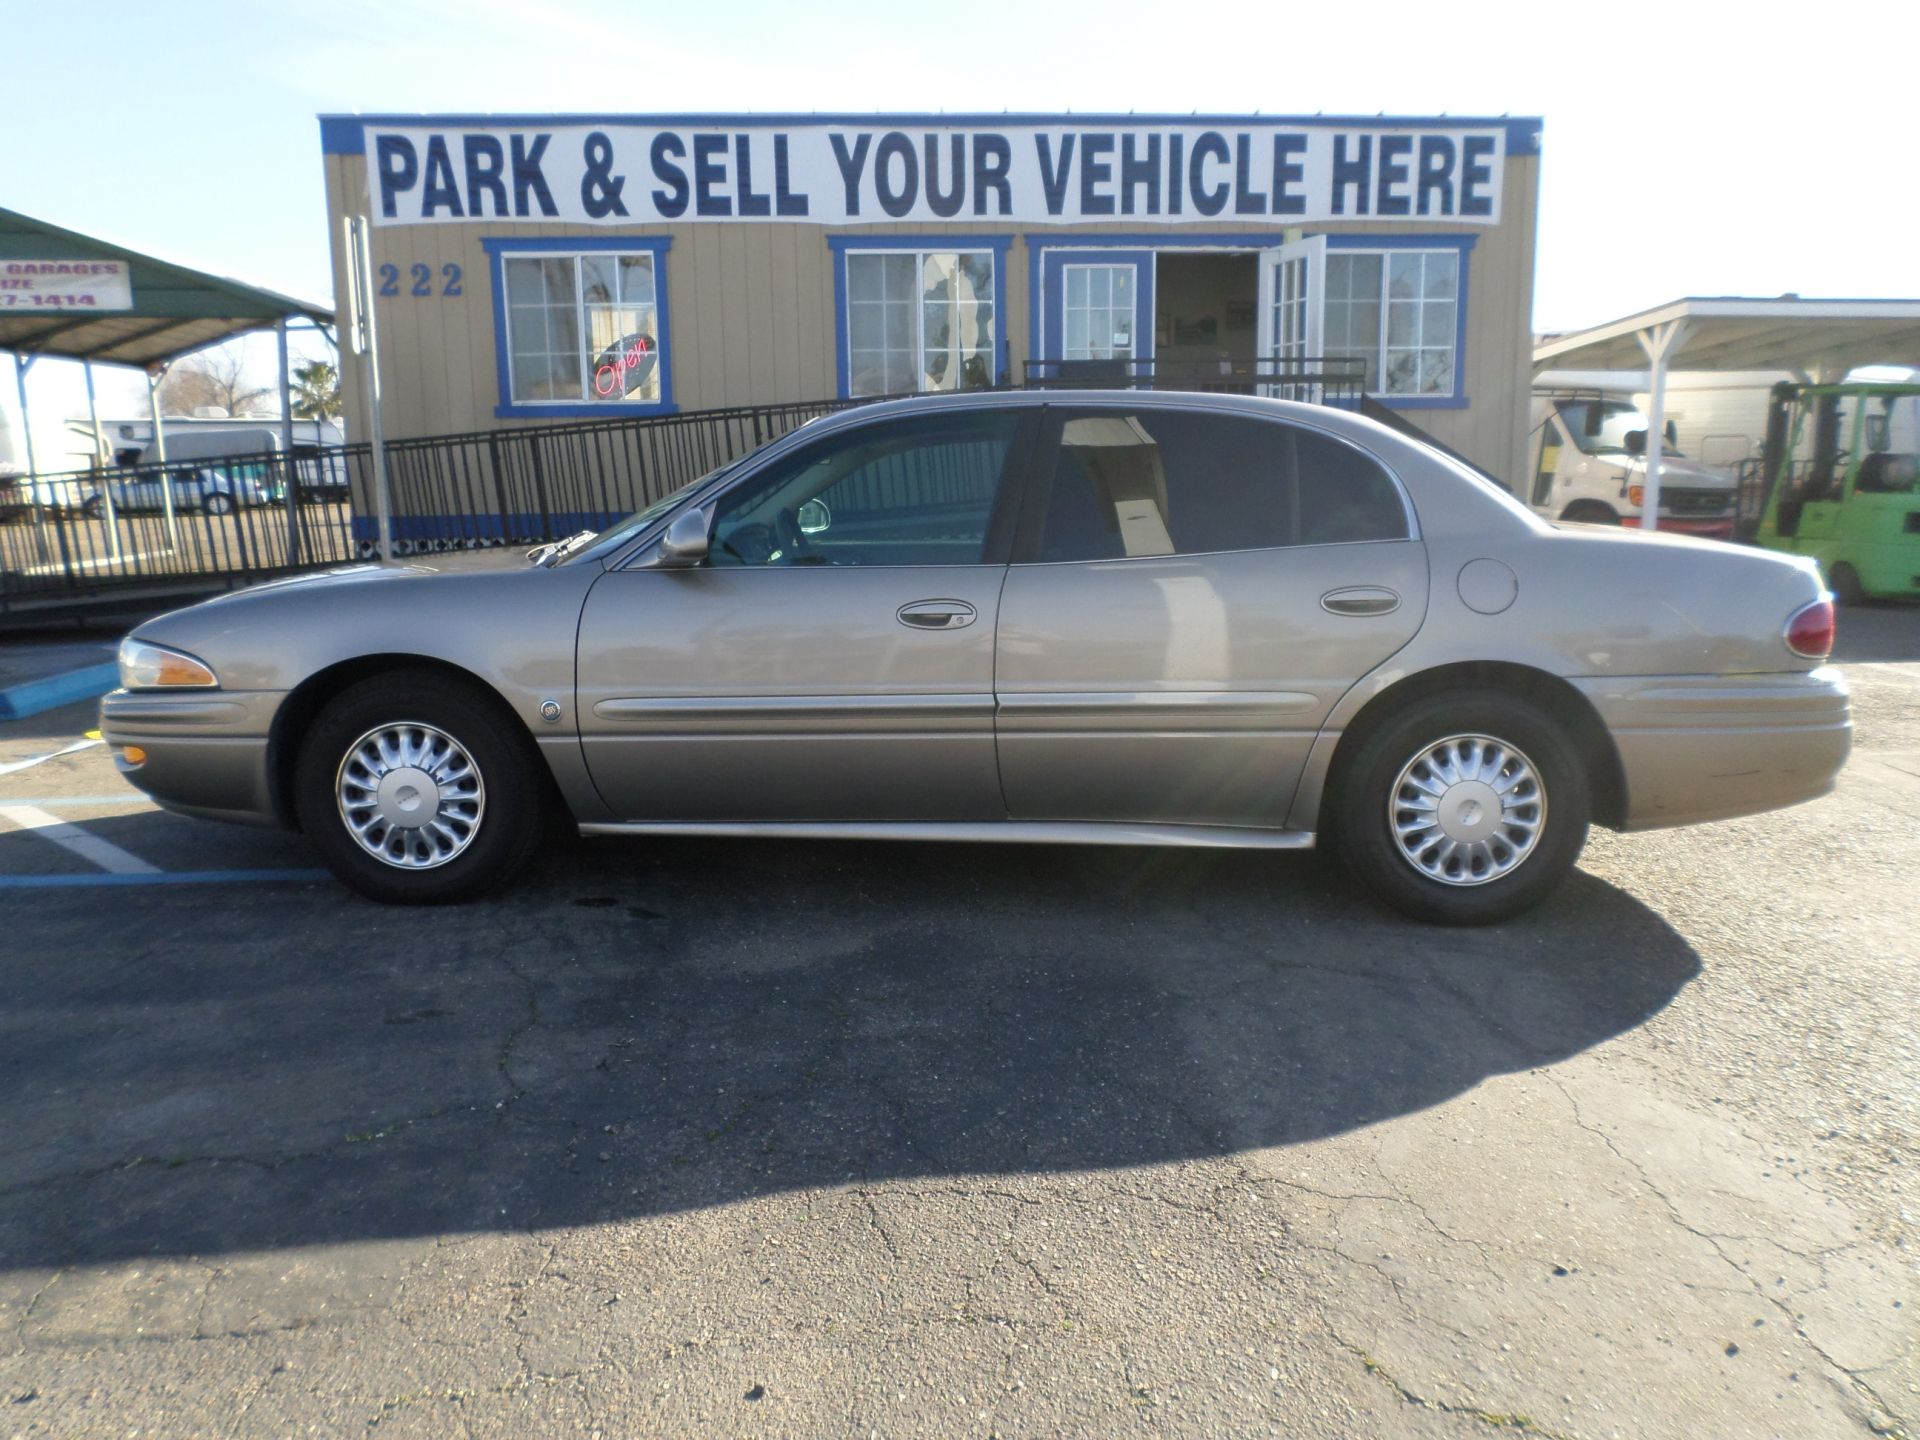 Car For Sale 2004 Buick Lesabre In Lodi Stockton Ca Cars For Sale Buick Lesabre Buick